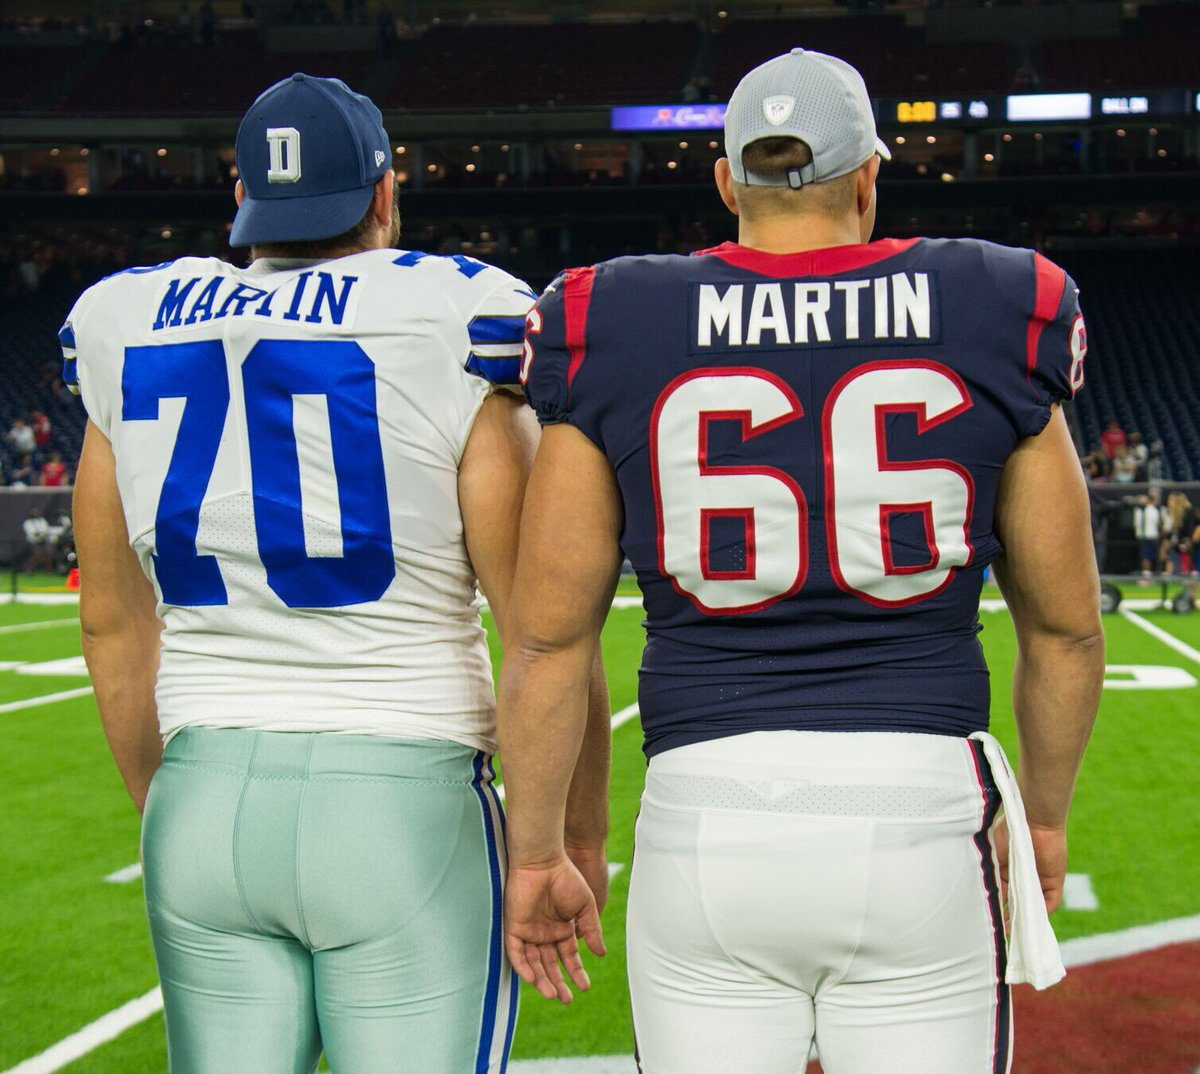 Nick and Zack Martin in their NFL duel